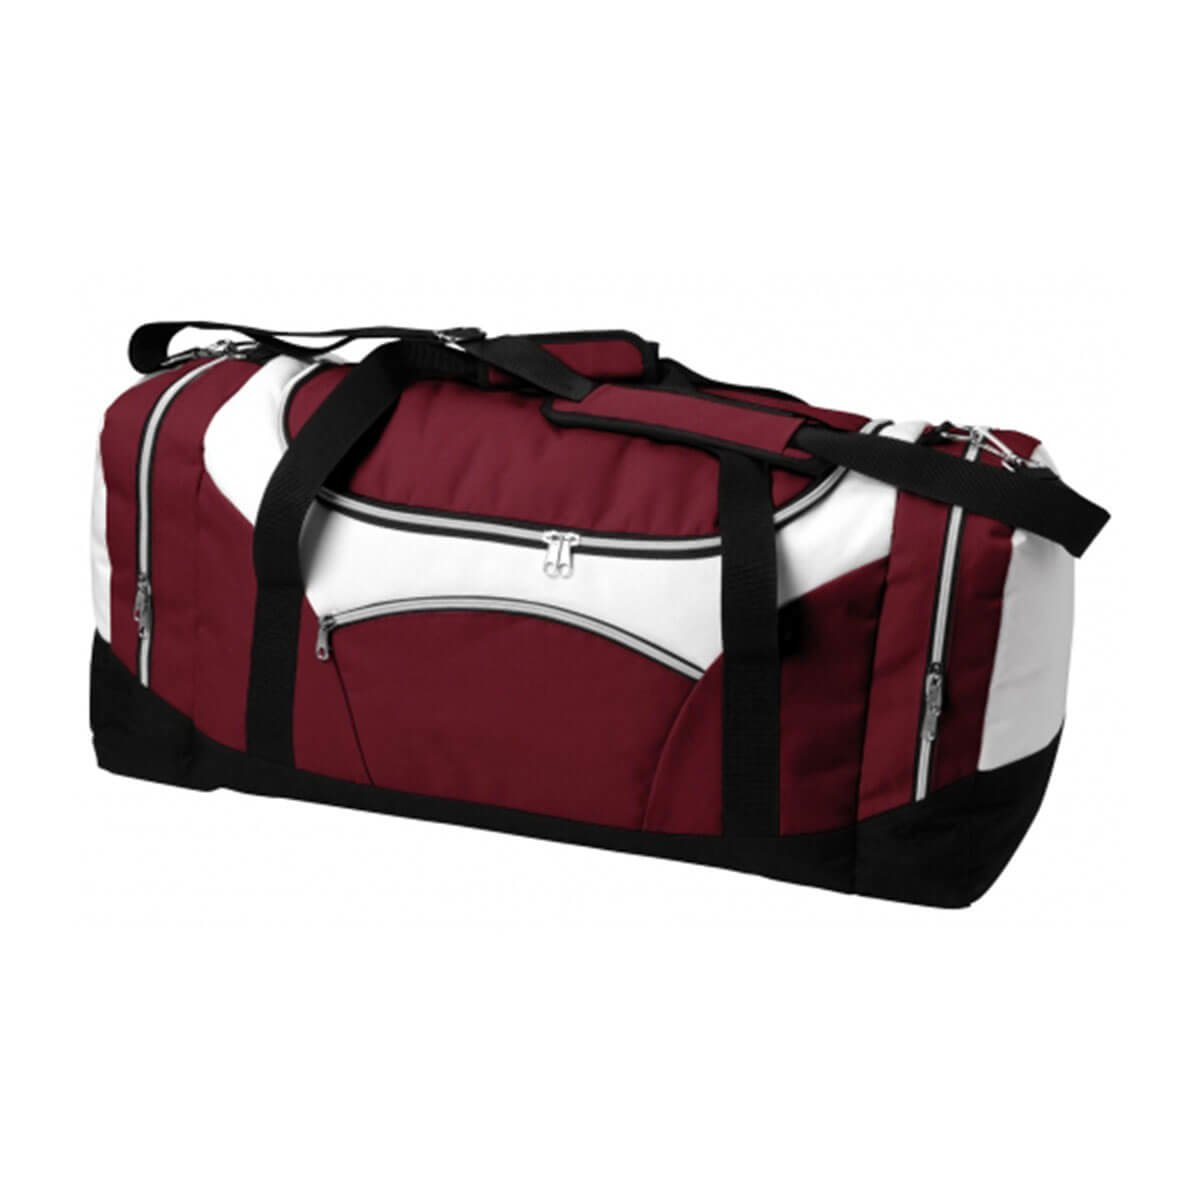 Stellar Sports Bag-Maroon / White